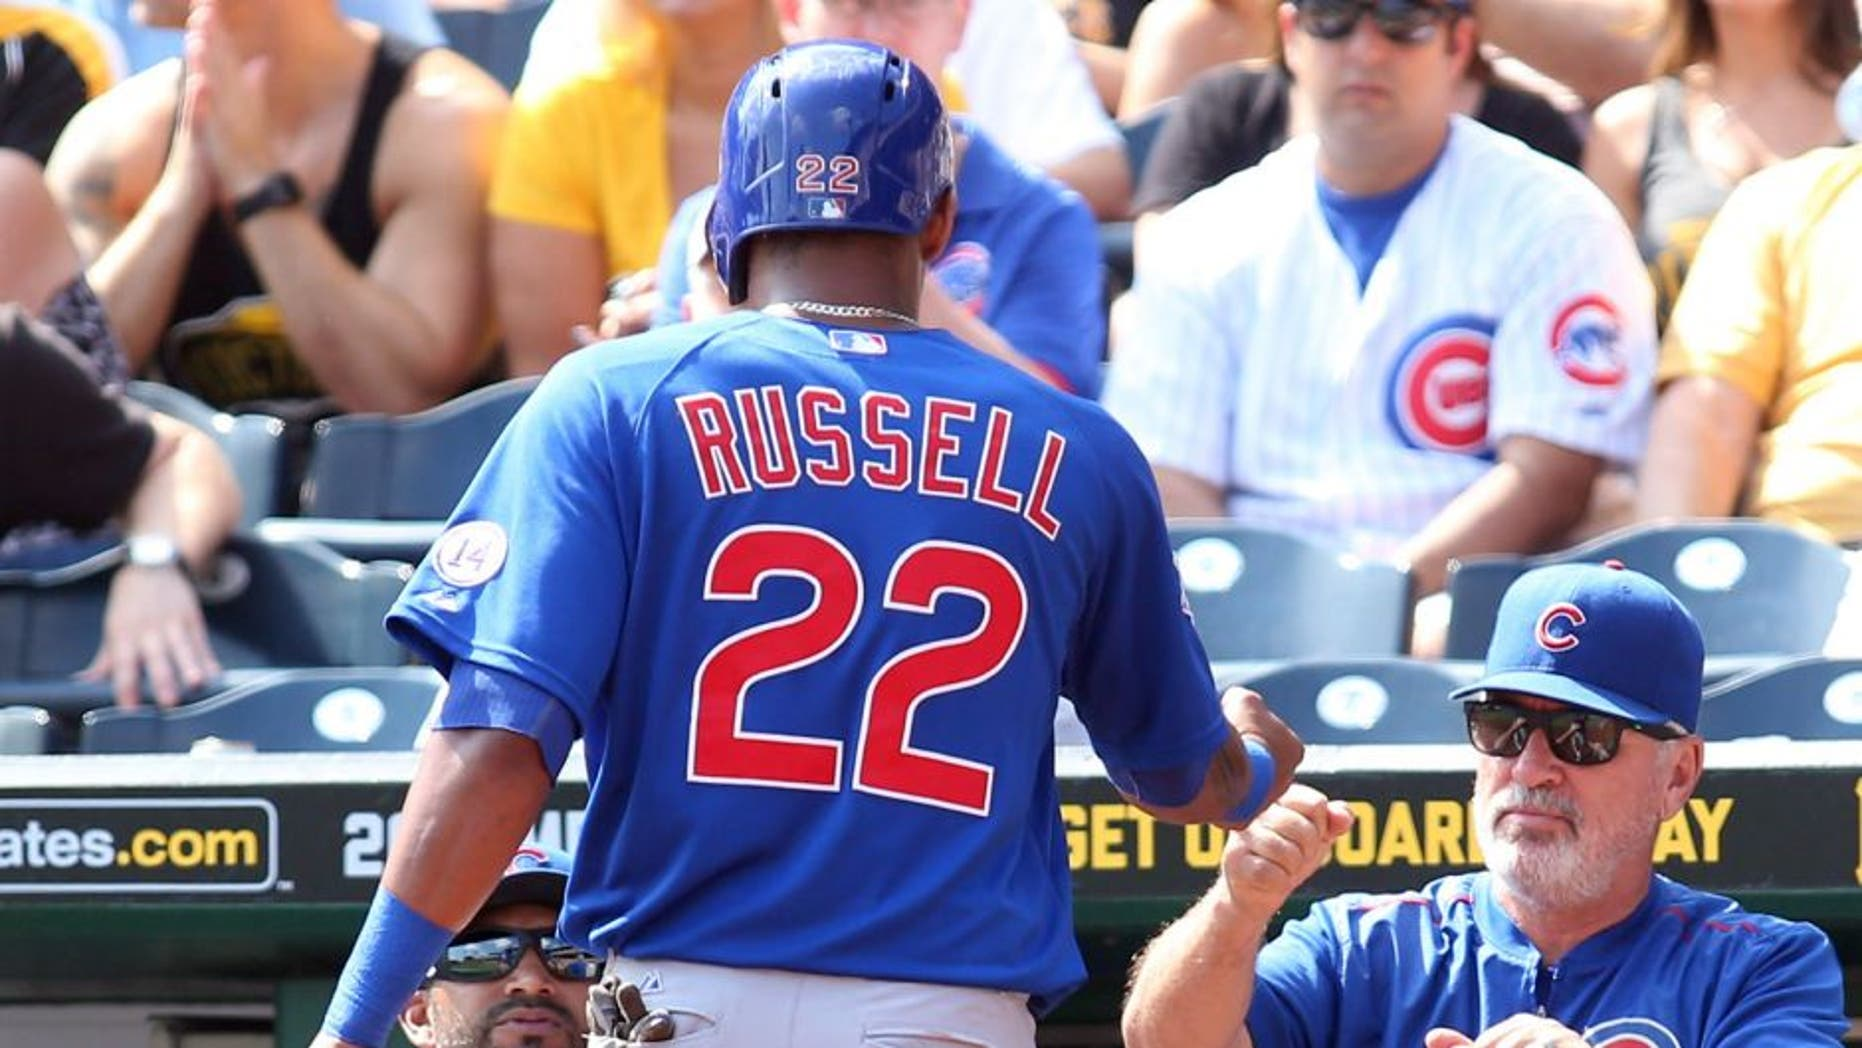 Sep 17, 2015; Pittsburgh, PA, USA; Chicago Cubs manager Joe Maddon (R) greets shortstop Addison Russell (22) after Russell scored a run against the Pittsburgh Pirates during the second inning at PNC Park. Mandatory Credit: Charles LeClaire-USA TODAY Sports